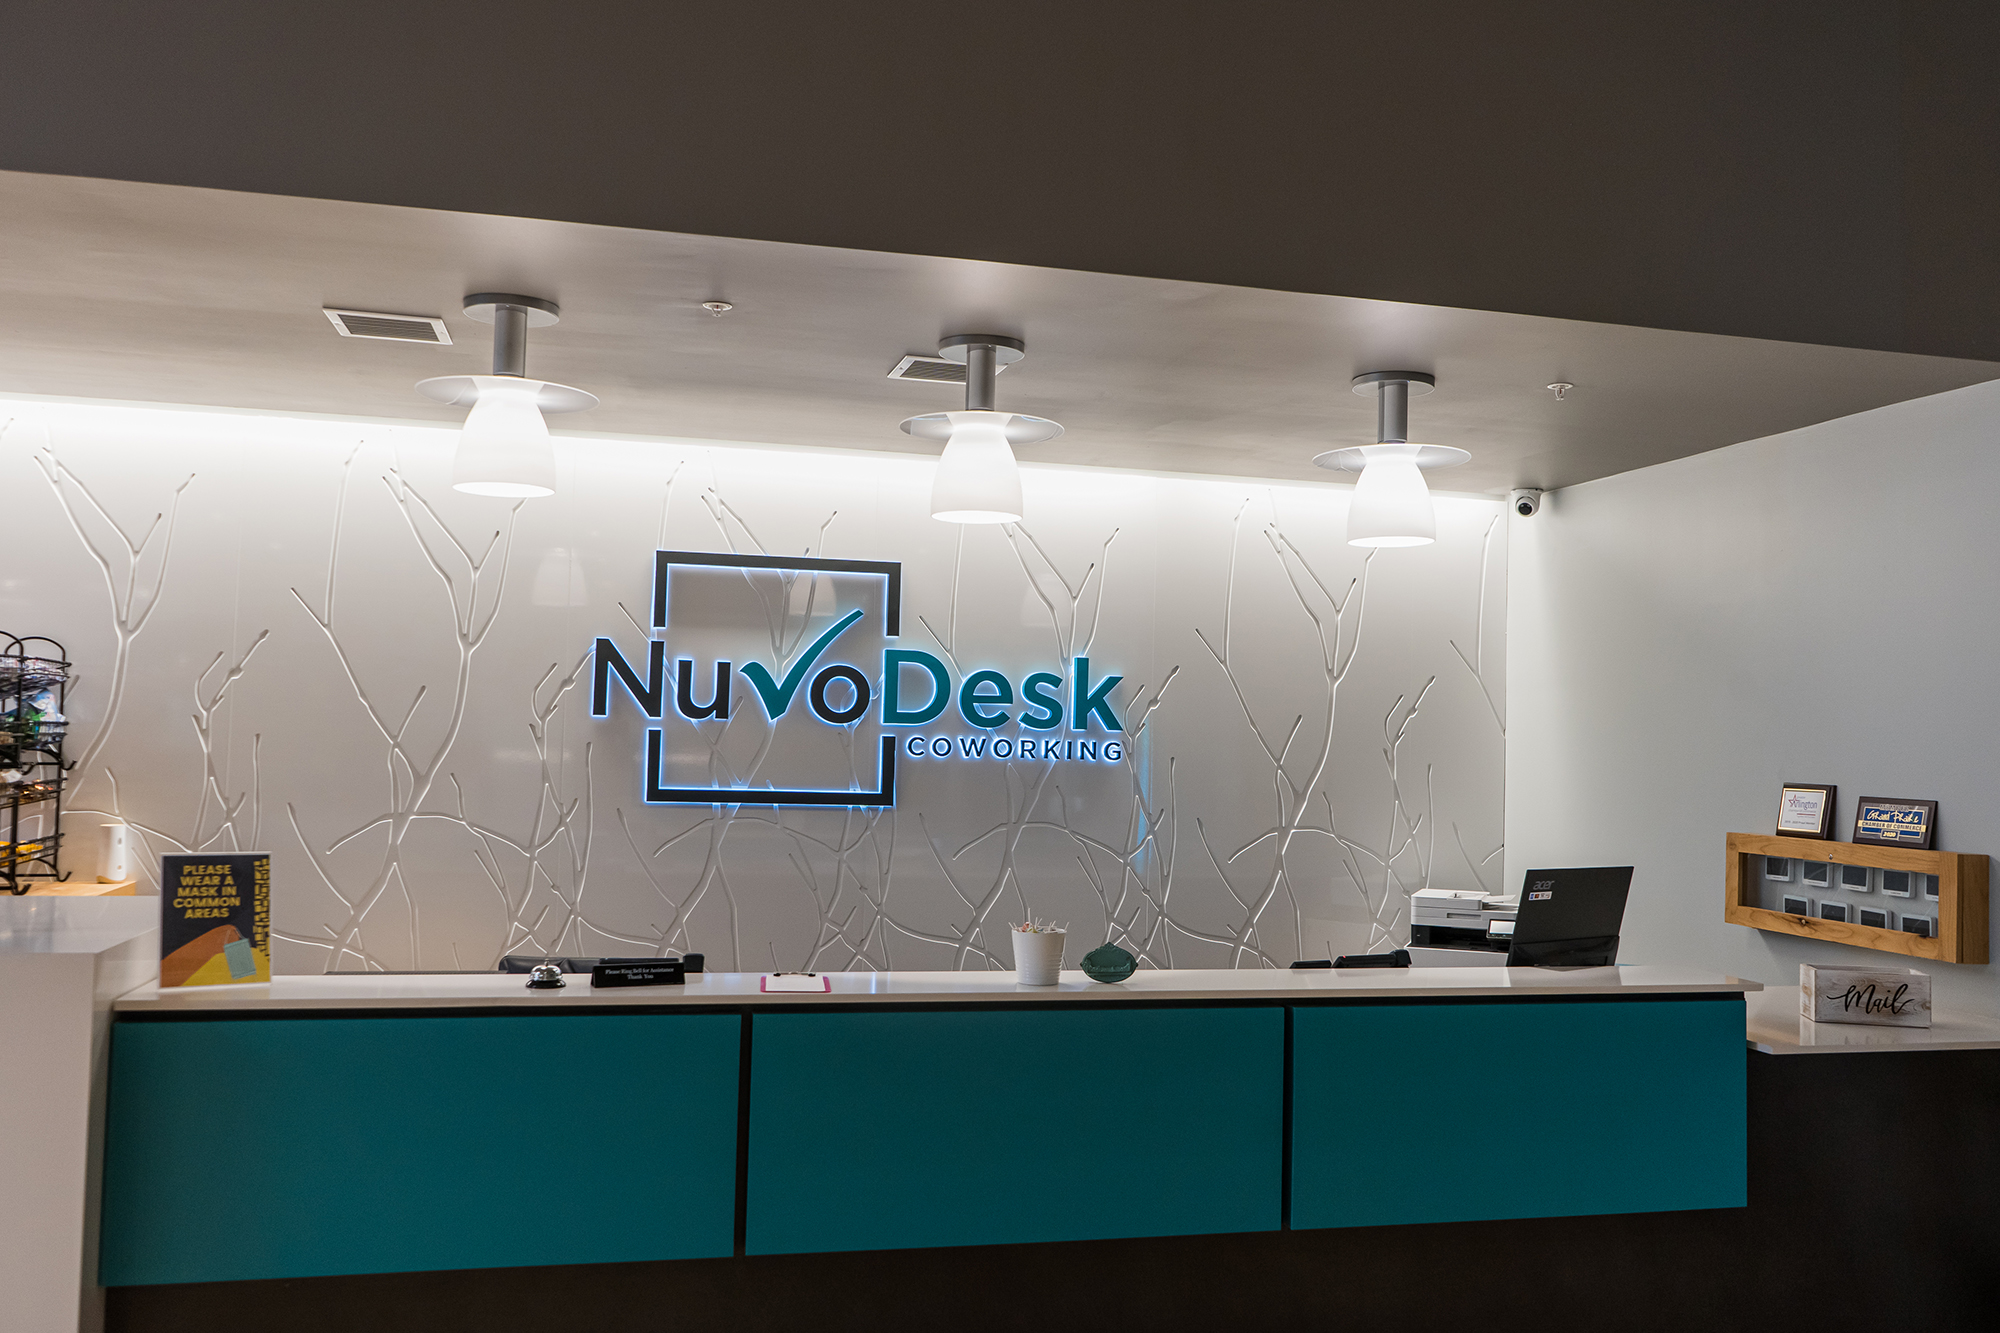 Nuvodesk front reception area